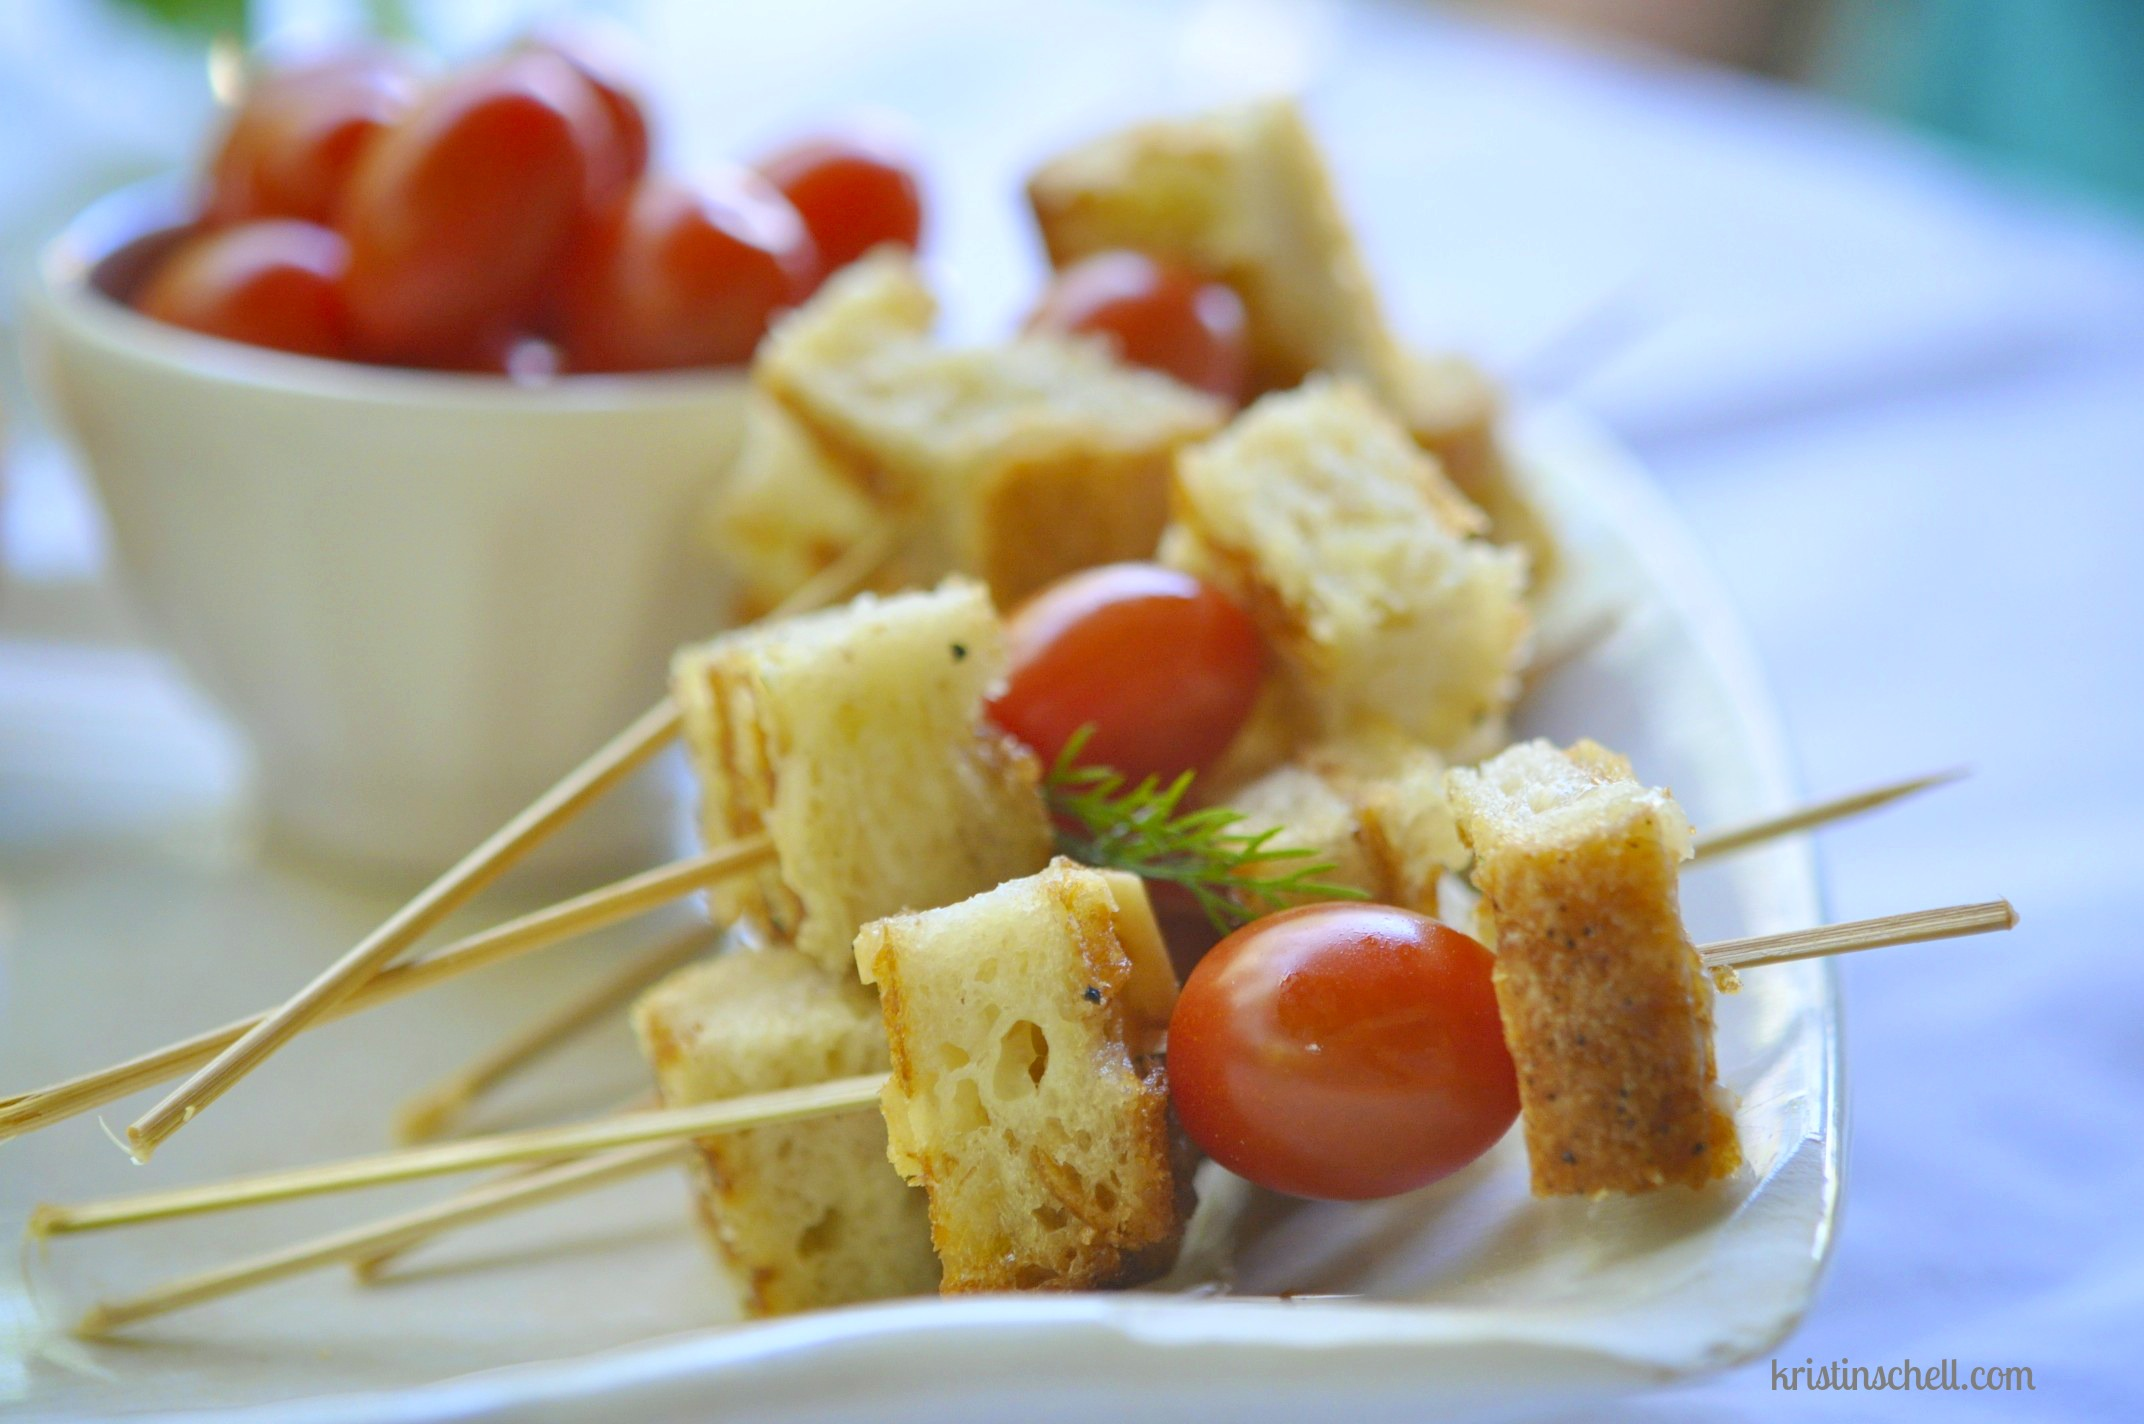 Grilled Cheese Croutons & Tomato Soup - Kristin Schell